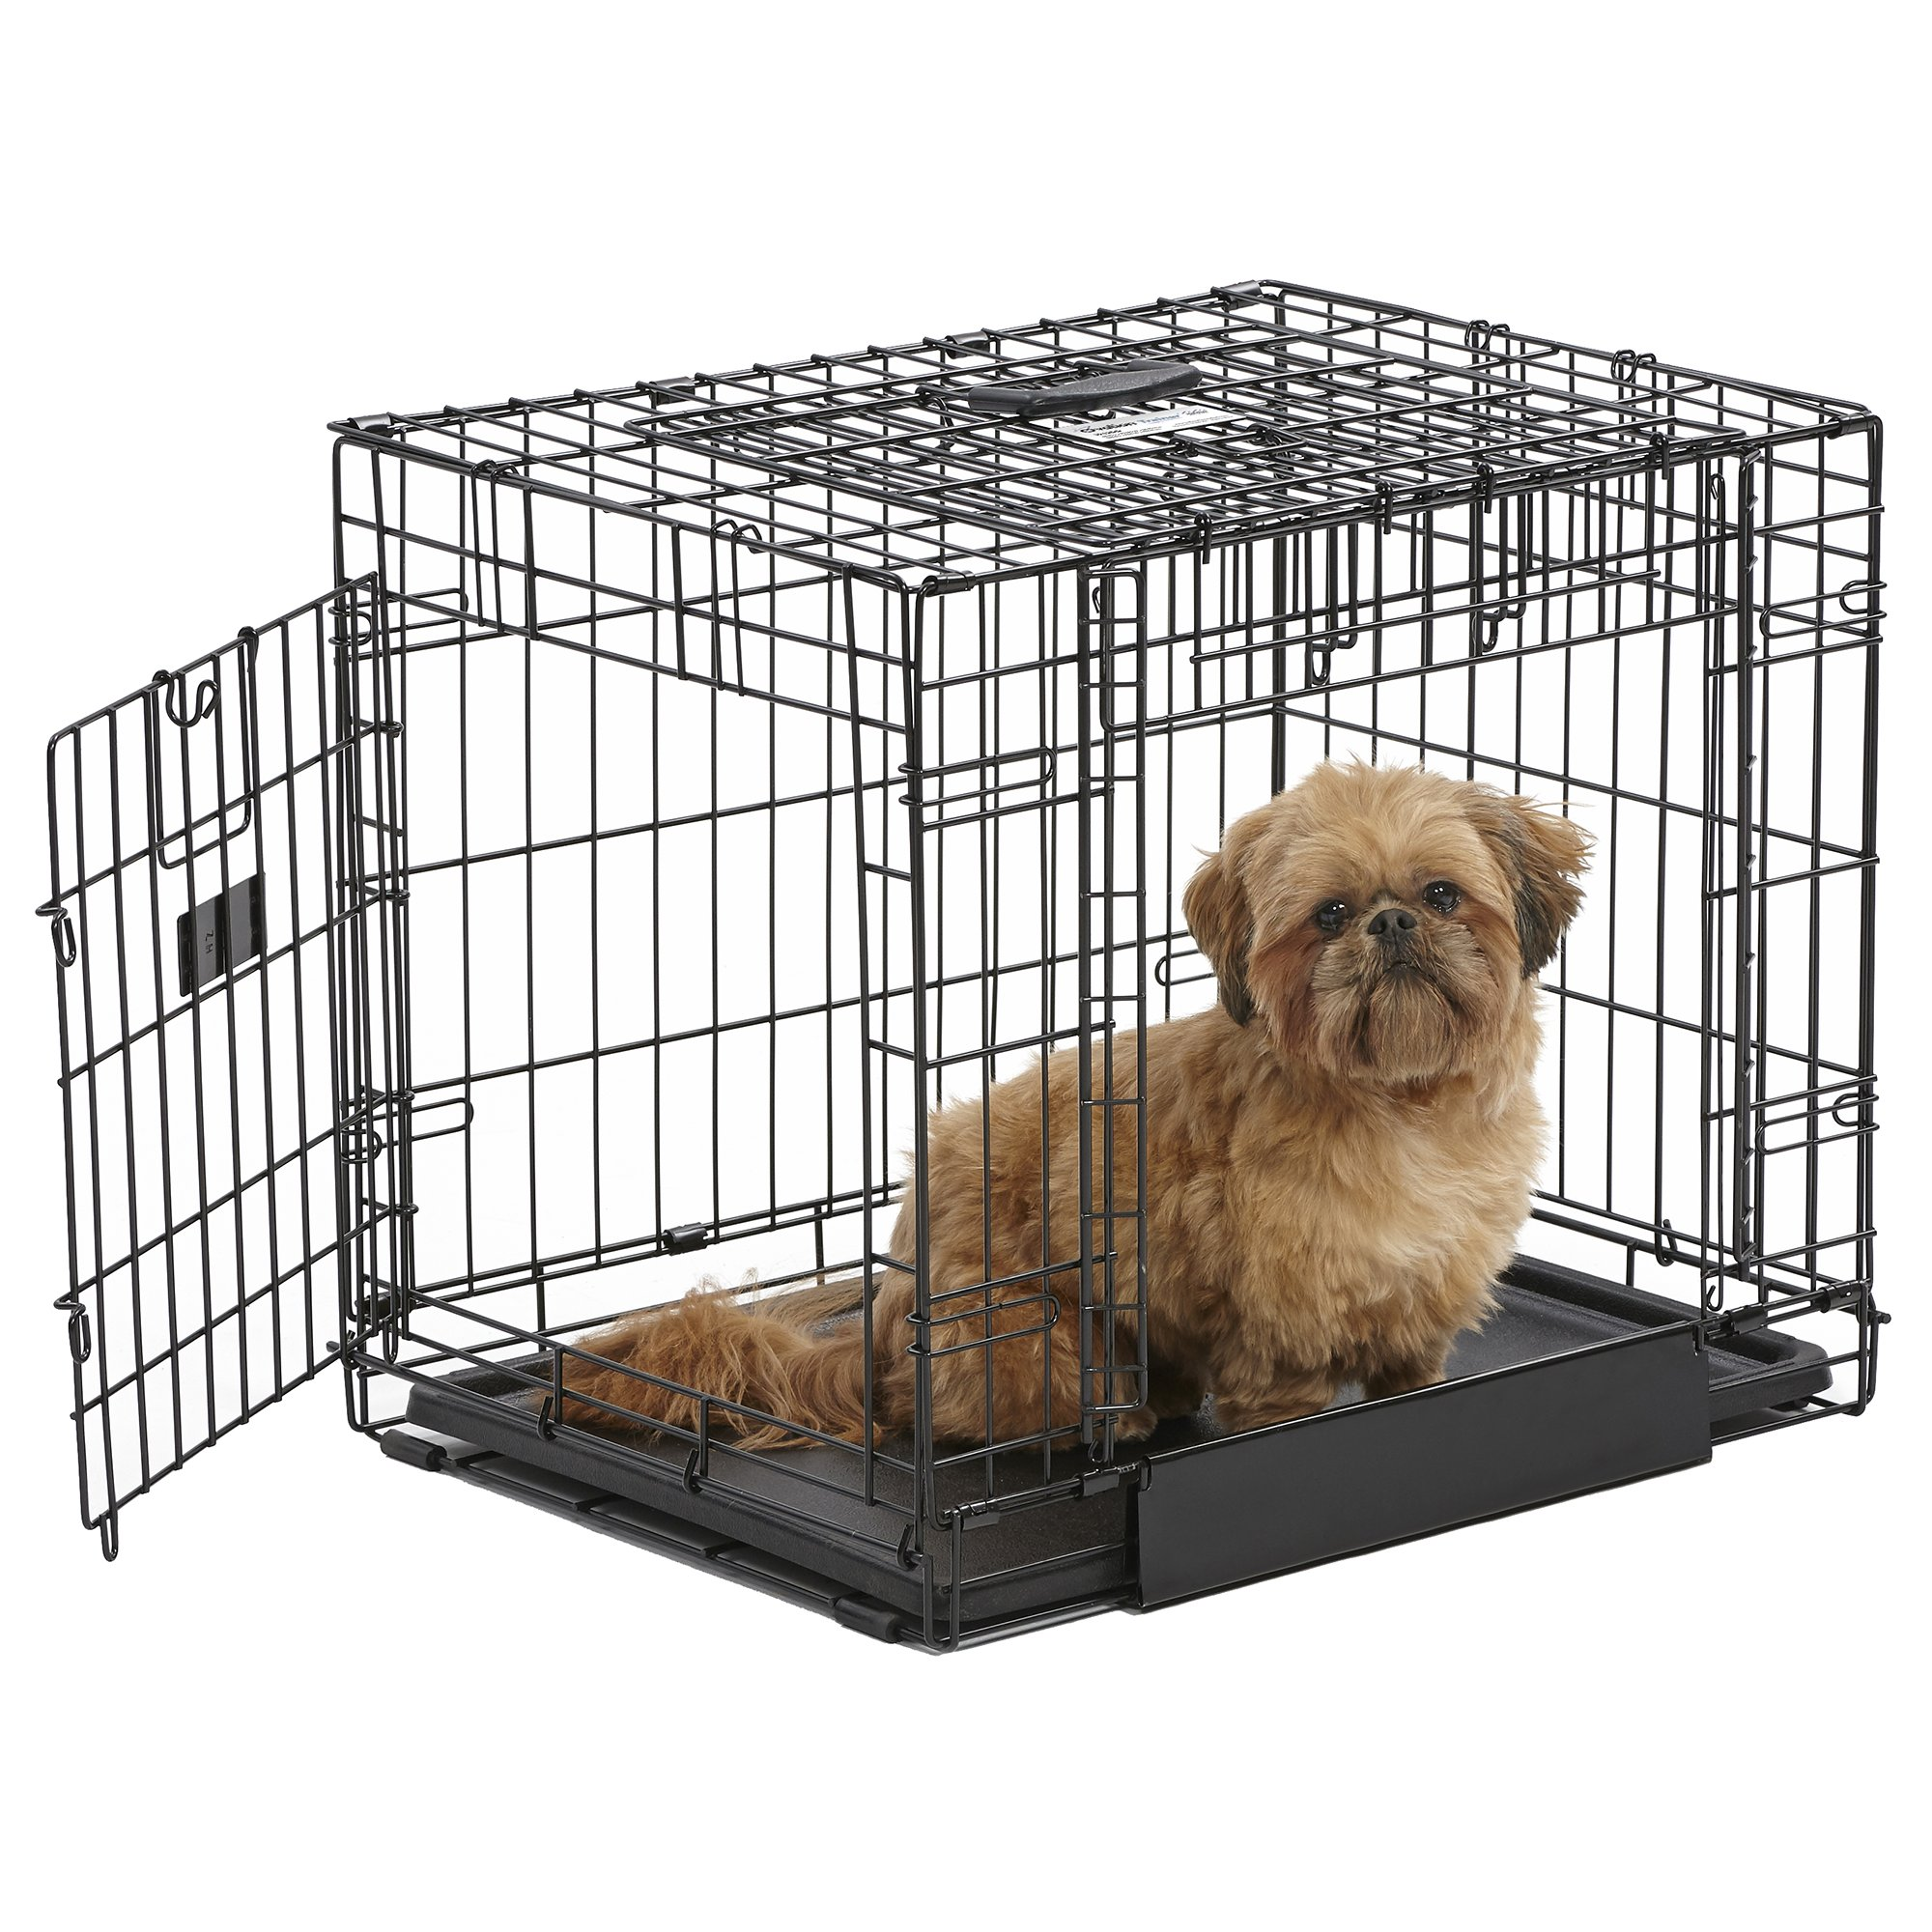 Midwest ovation trainer double door dog crate petco for Double door with dog door